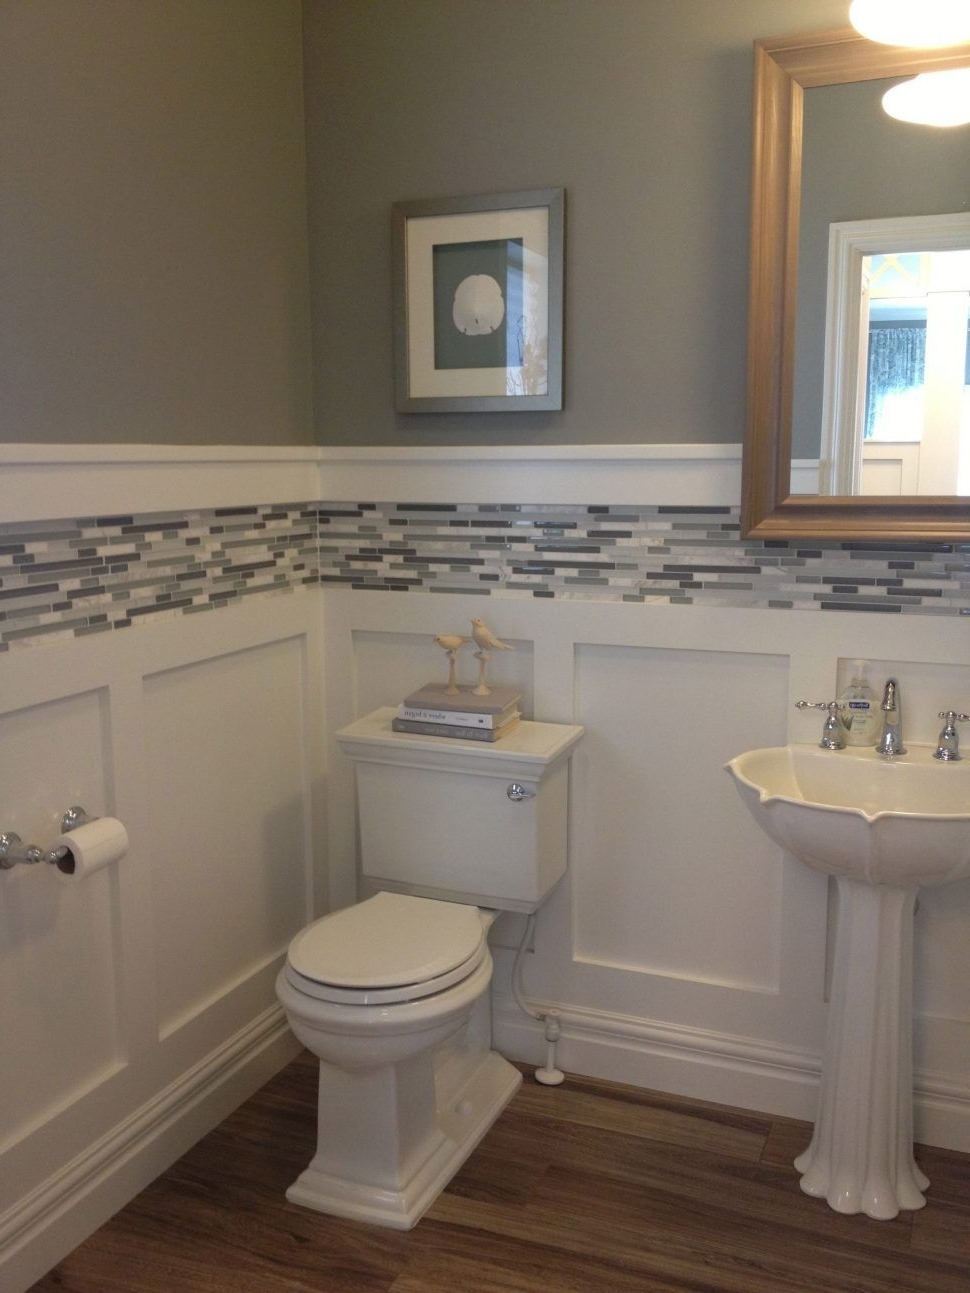 Bathroom:wainscoting Ideas Bathroom Pictures Images Small 10+ Small Bathroom Designs With Wainscoting Ideas